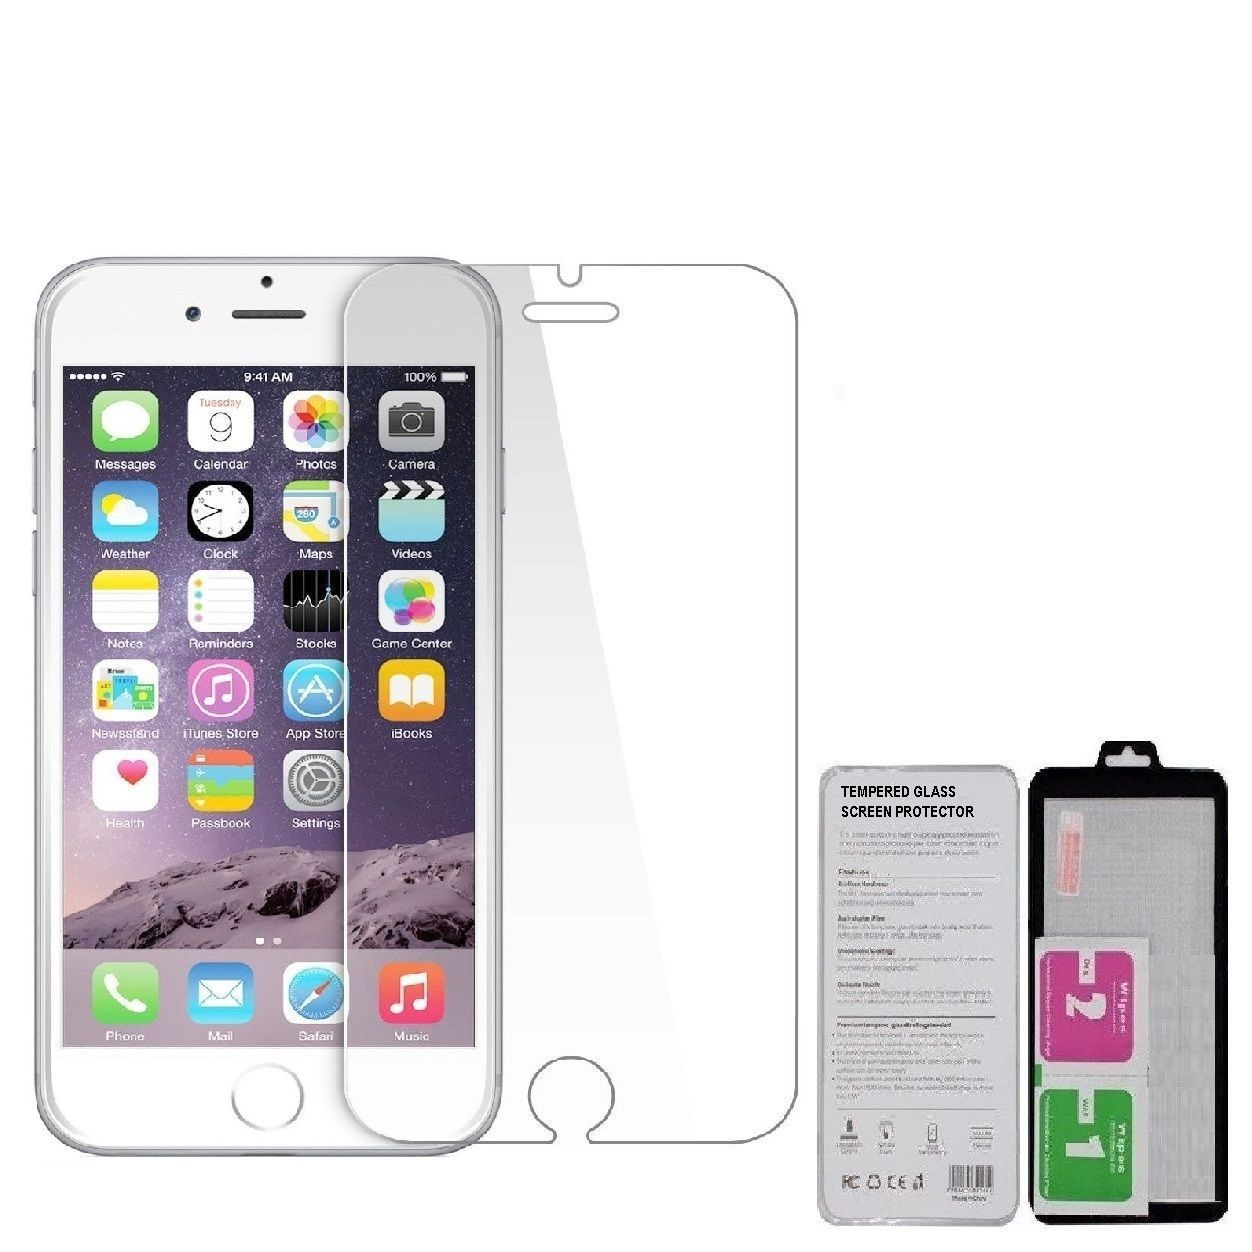 separation shoes d0bc8 6dfd9 iPhone 6+/6s+ Tempered Glass Screen protector